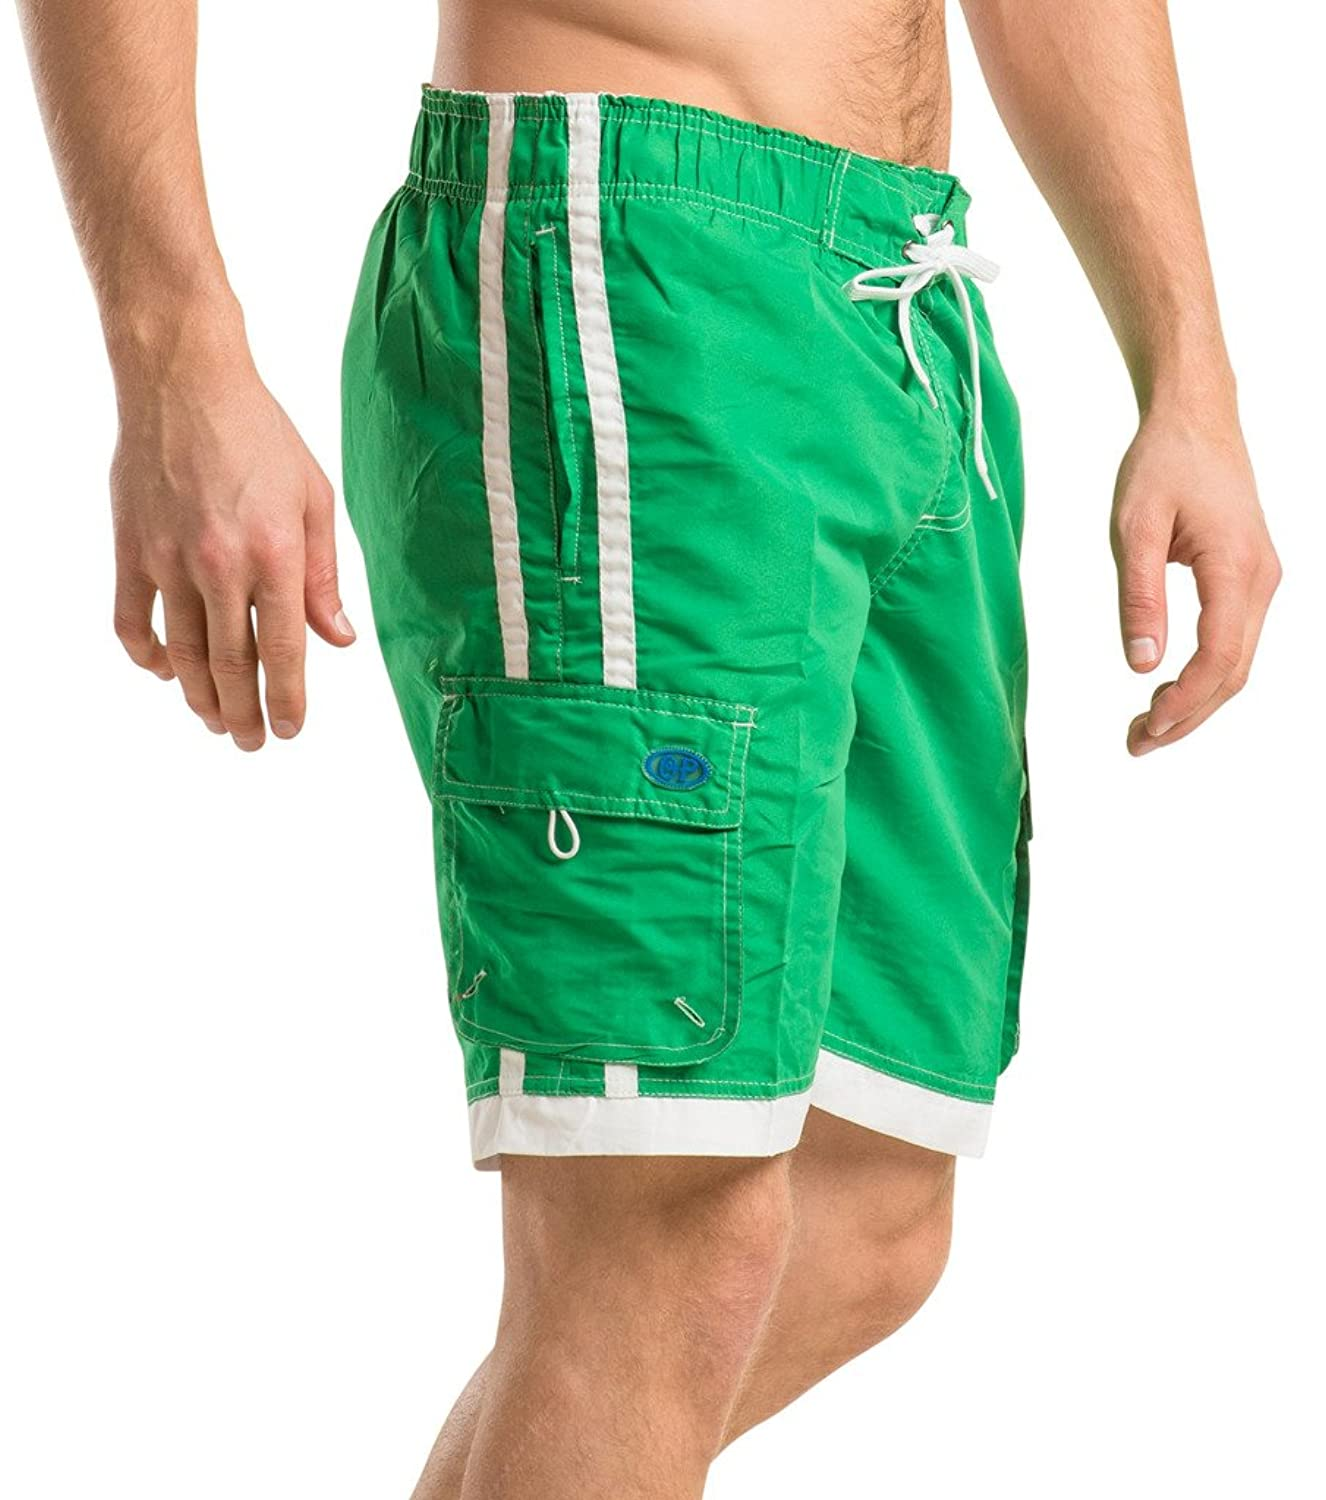 Men's Swimwear from smileqbl.gq Whether you're hanging out poolside, soaking up the sun on the beach, or swimming laps to stay fit, you'll find stylish and comfortable men's swimwear for every occasion at .